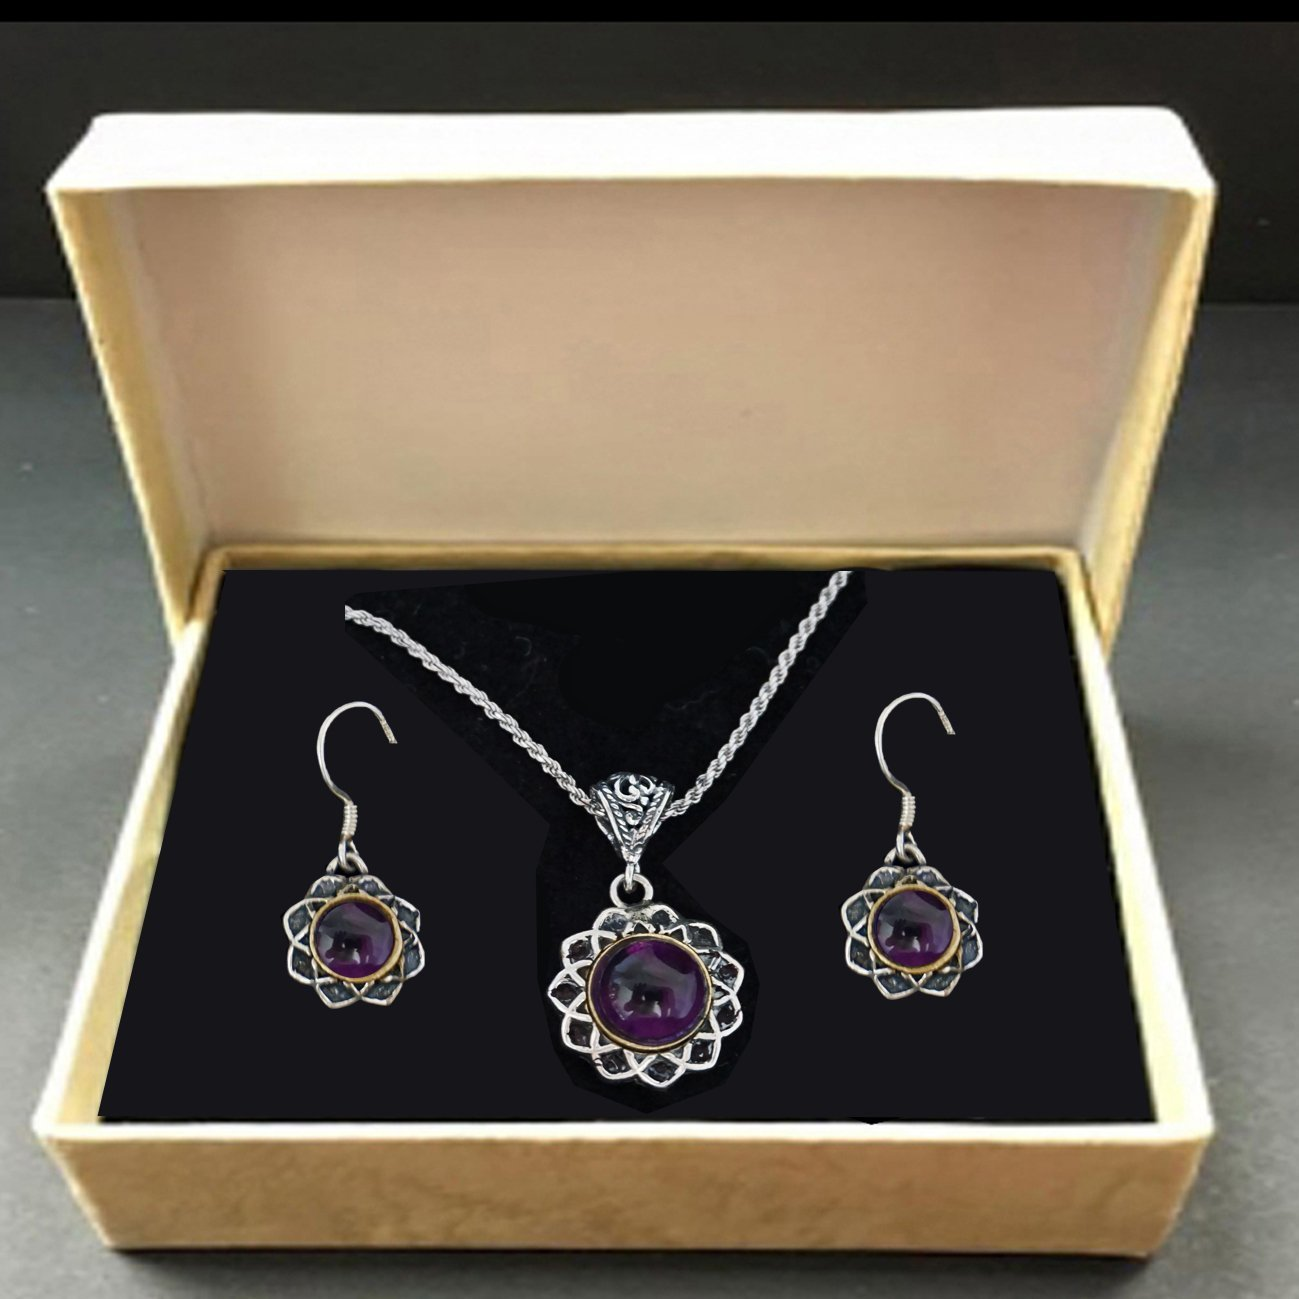 A Festive set For a Woman. Earrings and Pendant. Embedded with Amethyst. Chakra Important Gemstone. Artistic Filigree Work. In 925 silver with a Delicate Chain 18